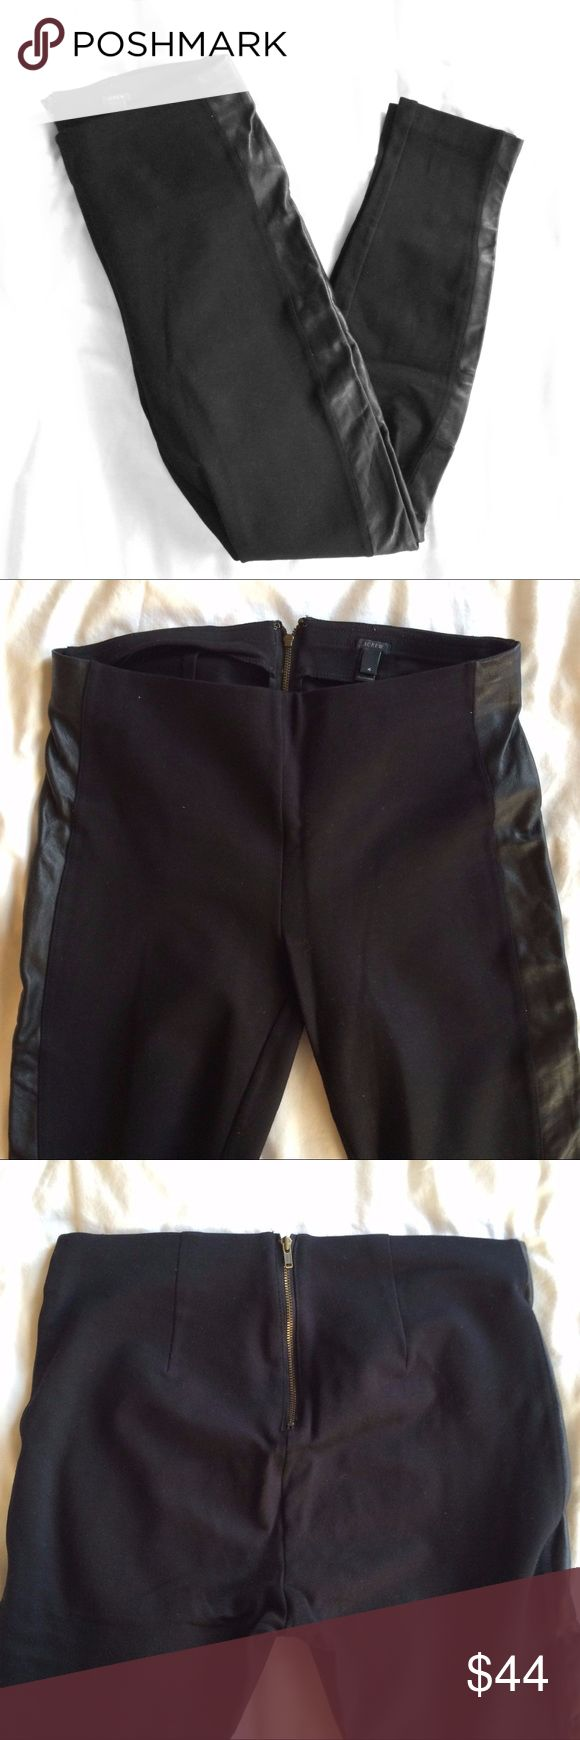 J Crew Leather Trim Tuxedo Ponte Pants Size 4 Barely worn black ponte stretch pants with real leather trim by J Crew. Ankle length. Exposed back zipper closure. Size 4. j crew Pants Leggings